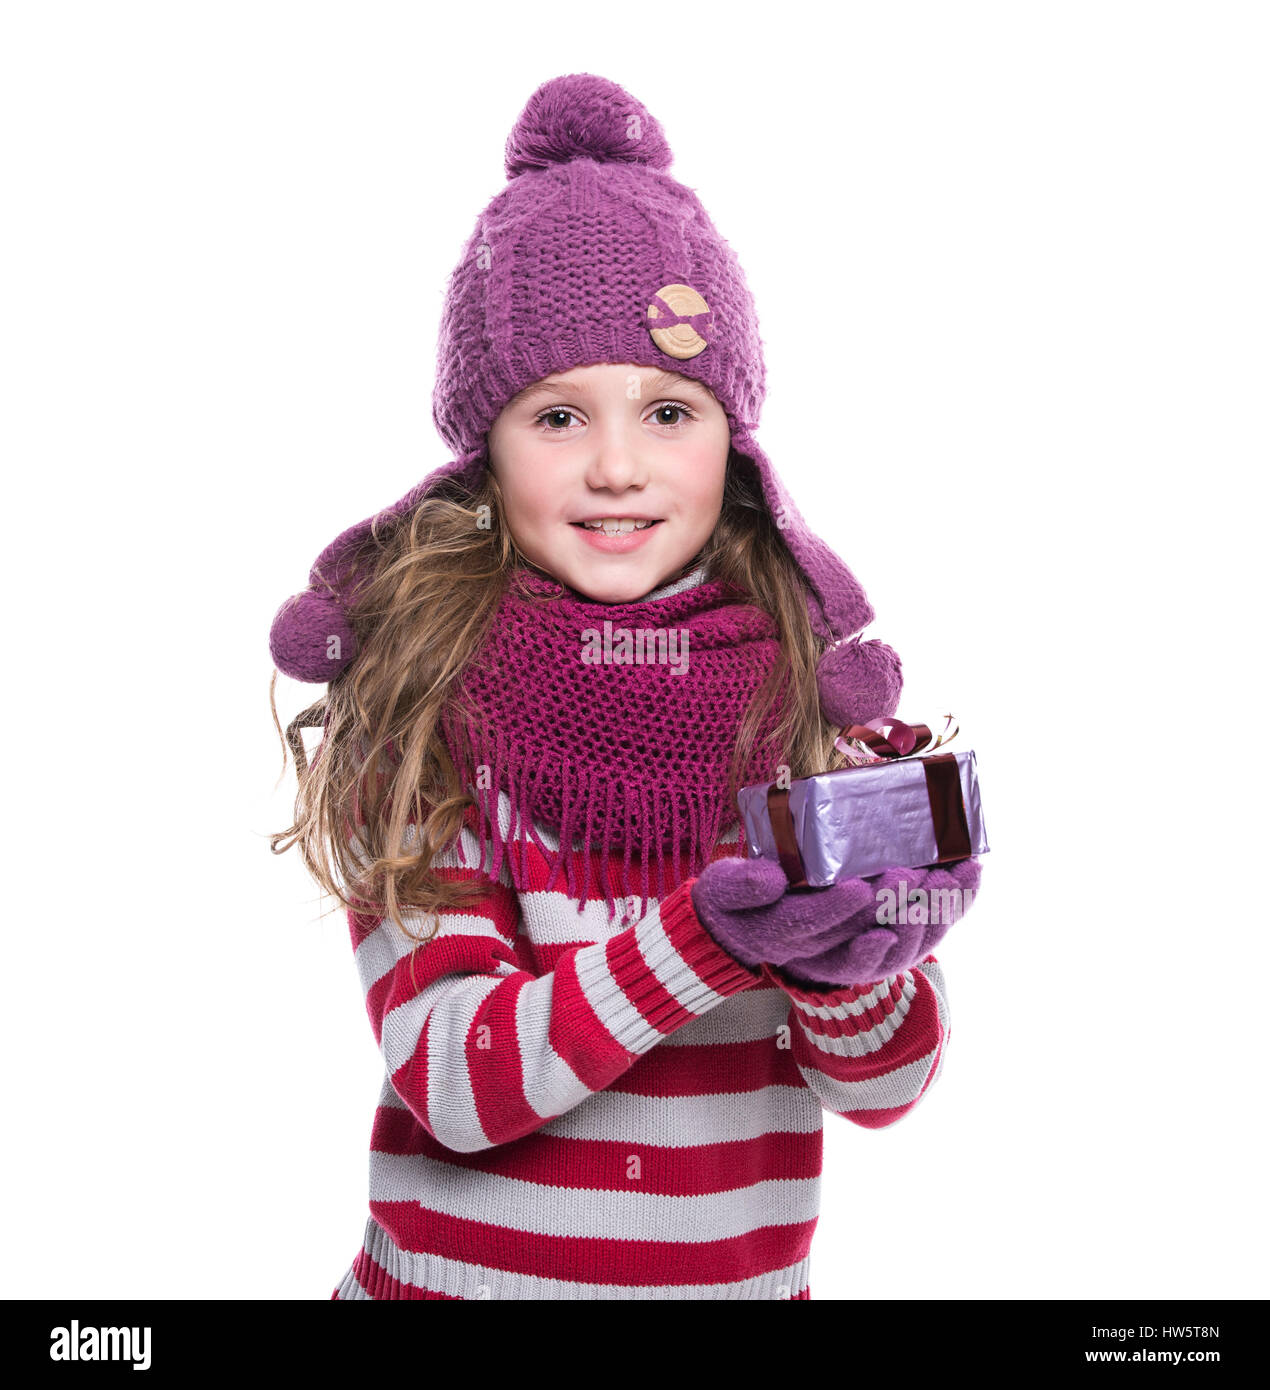 ad9f78b60 Cute smiling little girl wearing purple knitted scarf